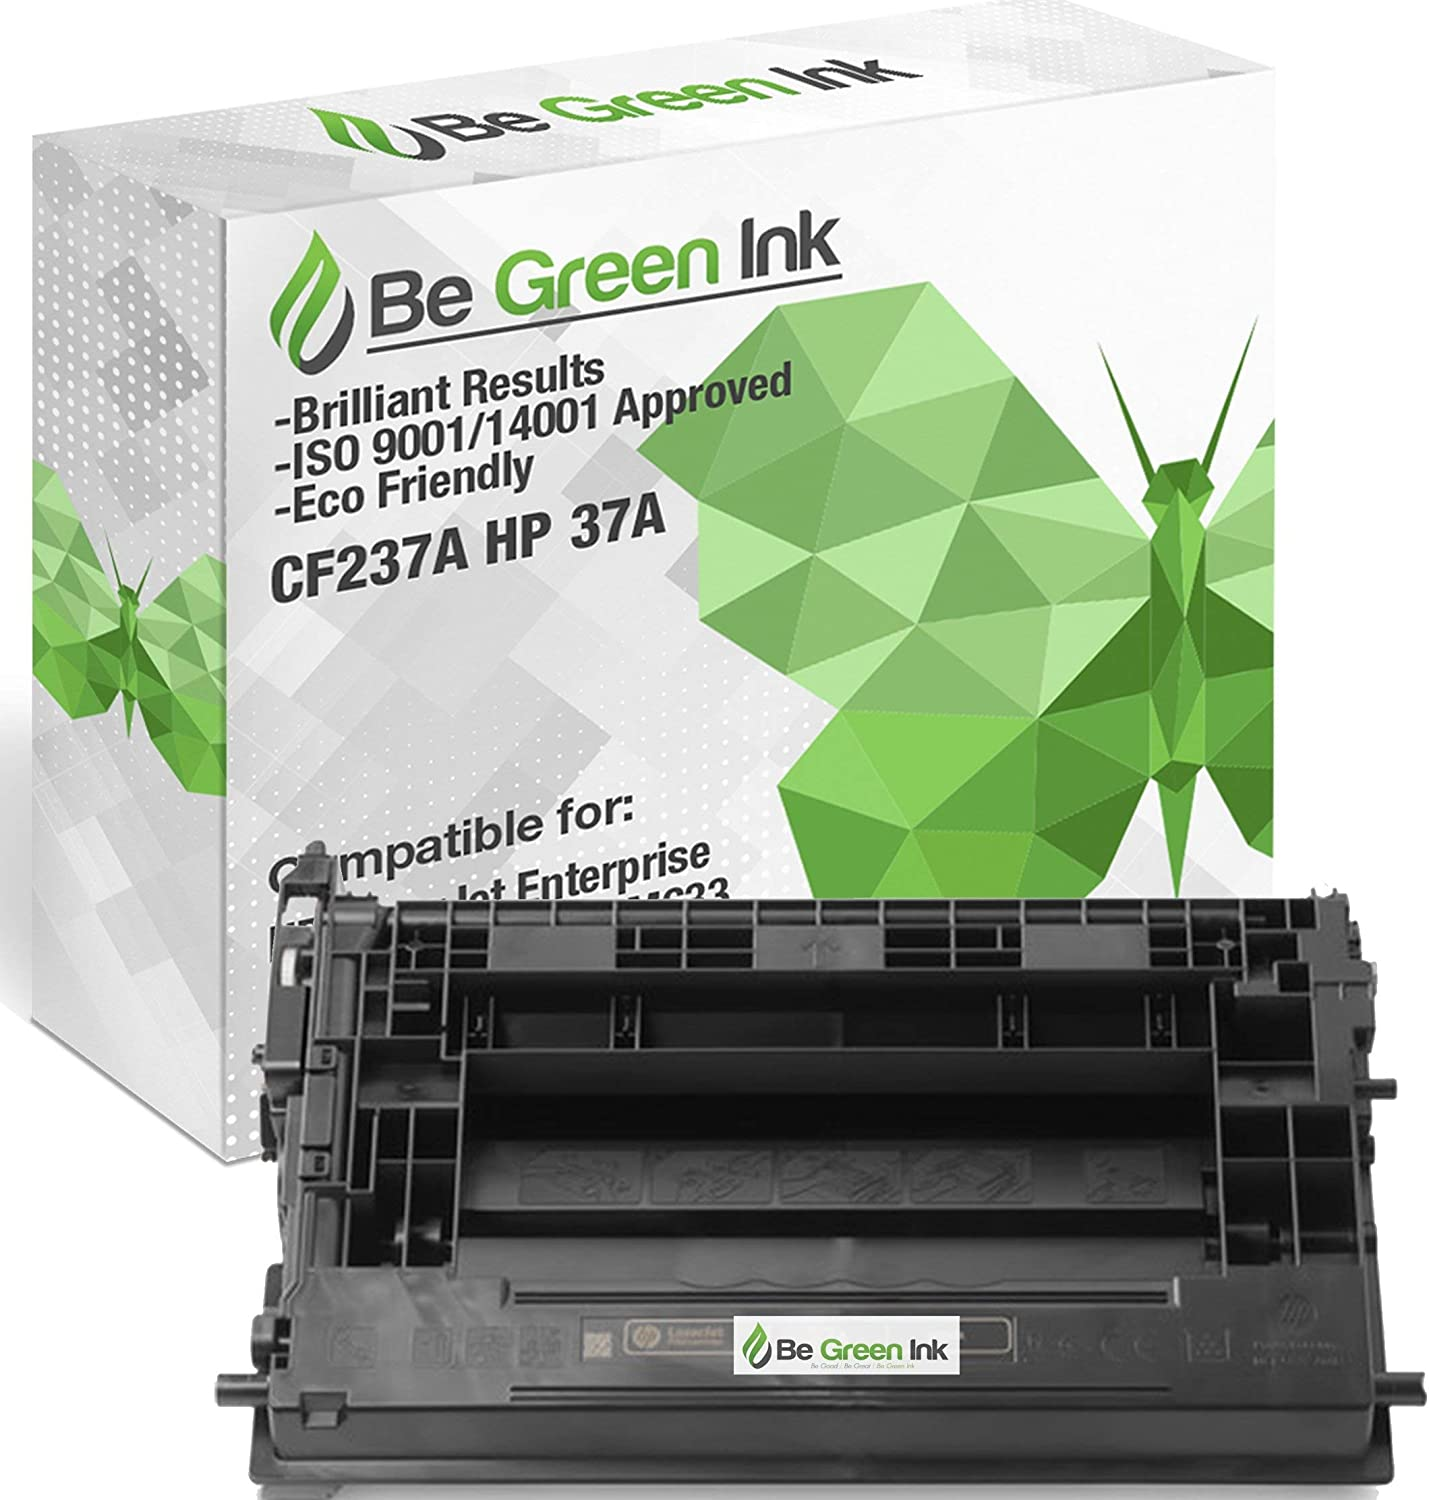 Be Green Ink 37A CF237A Compatible Toner Cartridge for HP Laserjet Enterprise M607 M607n M607dn M608 M608n M608dn M608x M609 M609dn, HP Laserjet Enterprise MFP M631 M632 M633 (1 Black – 11,000 Yield)